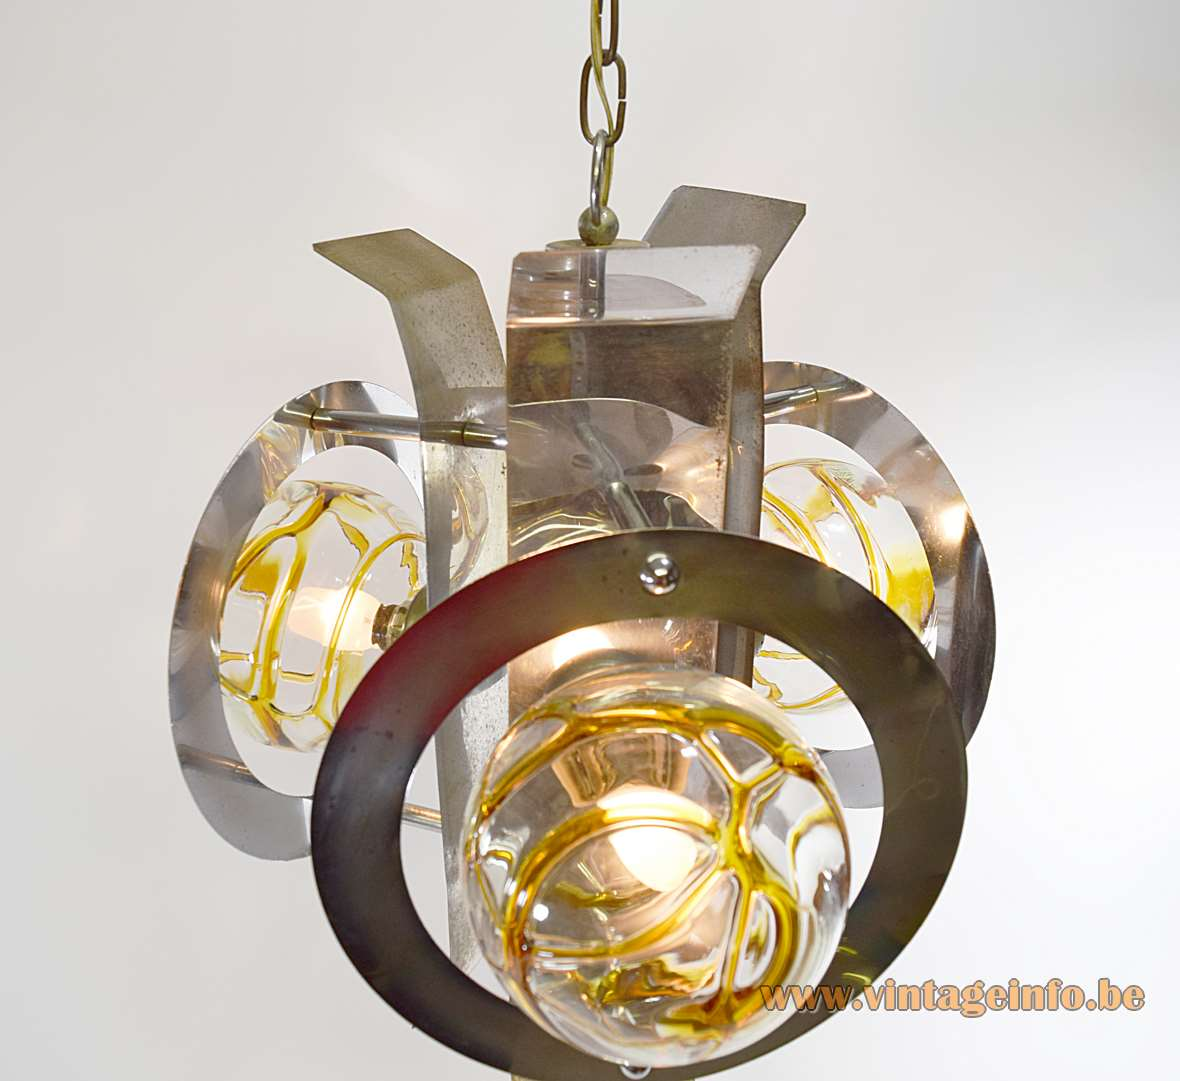 Chrome and amber veined glass chandelier with 3 DORIA globes and metal slats chain 1960s 1970s